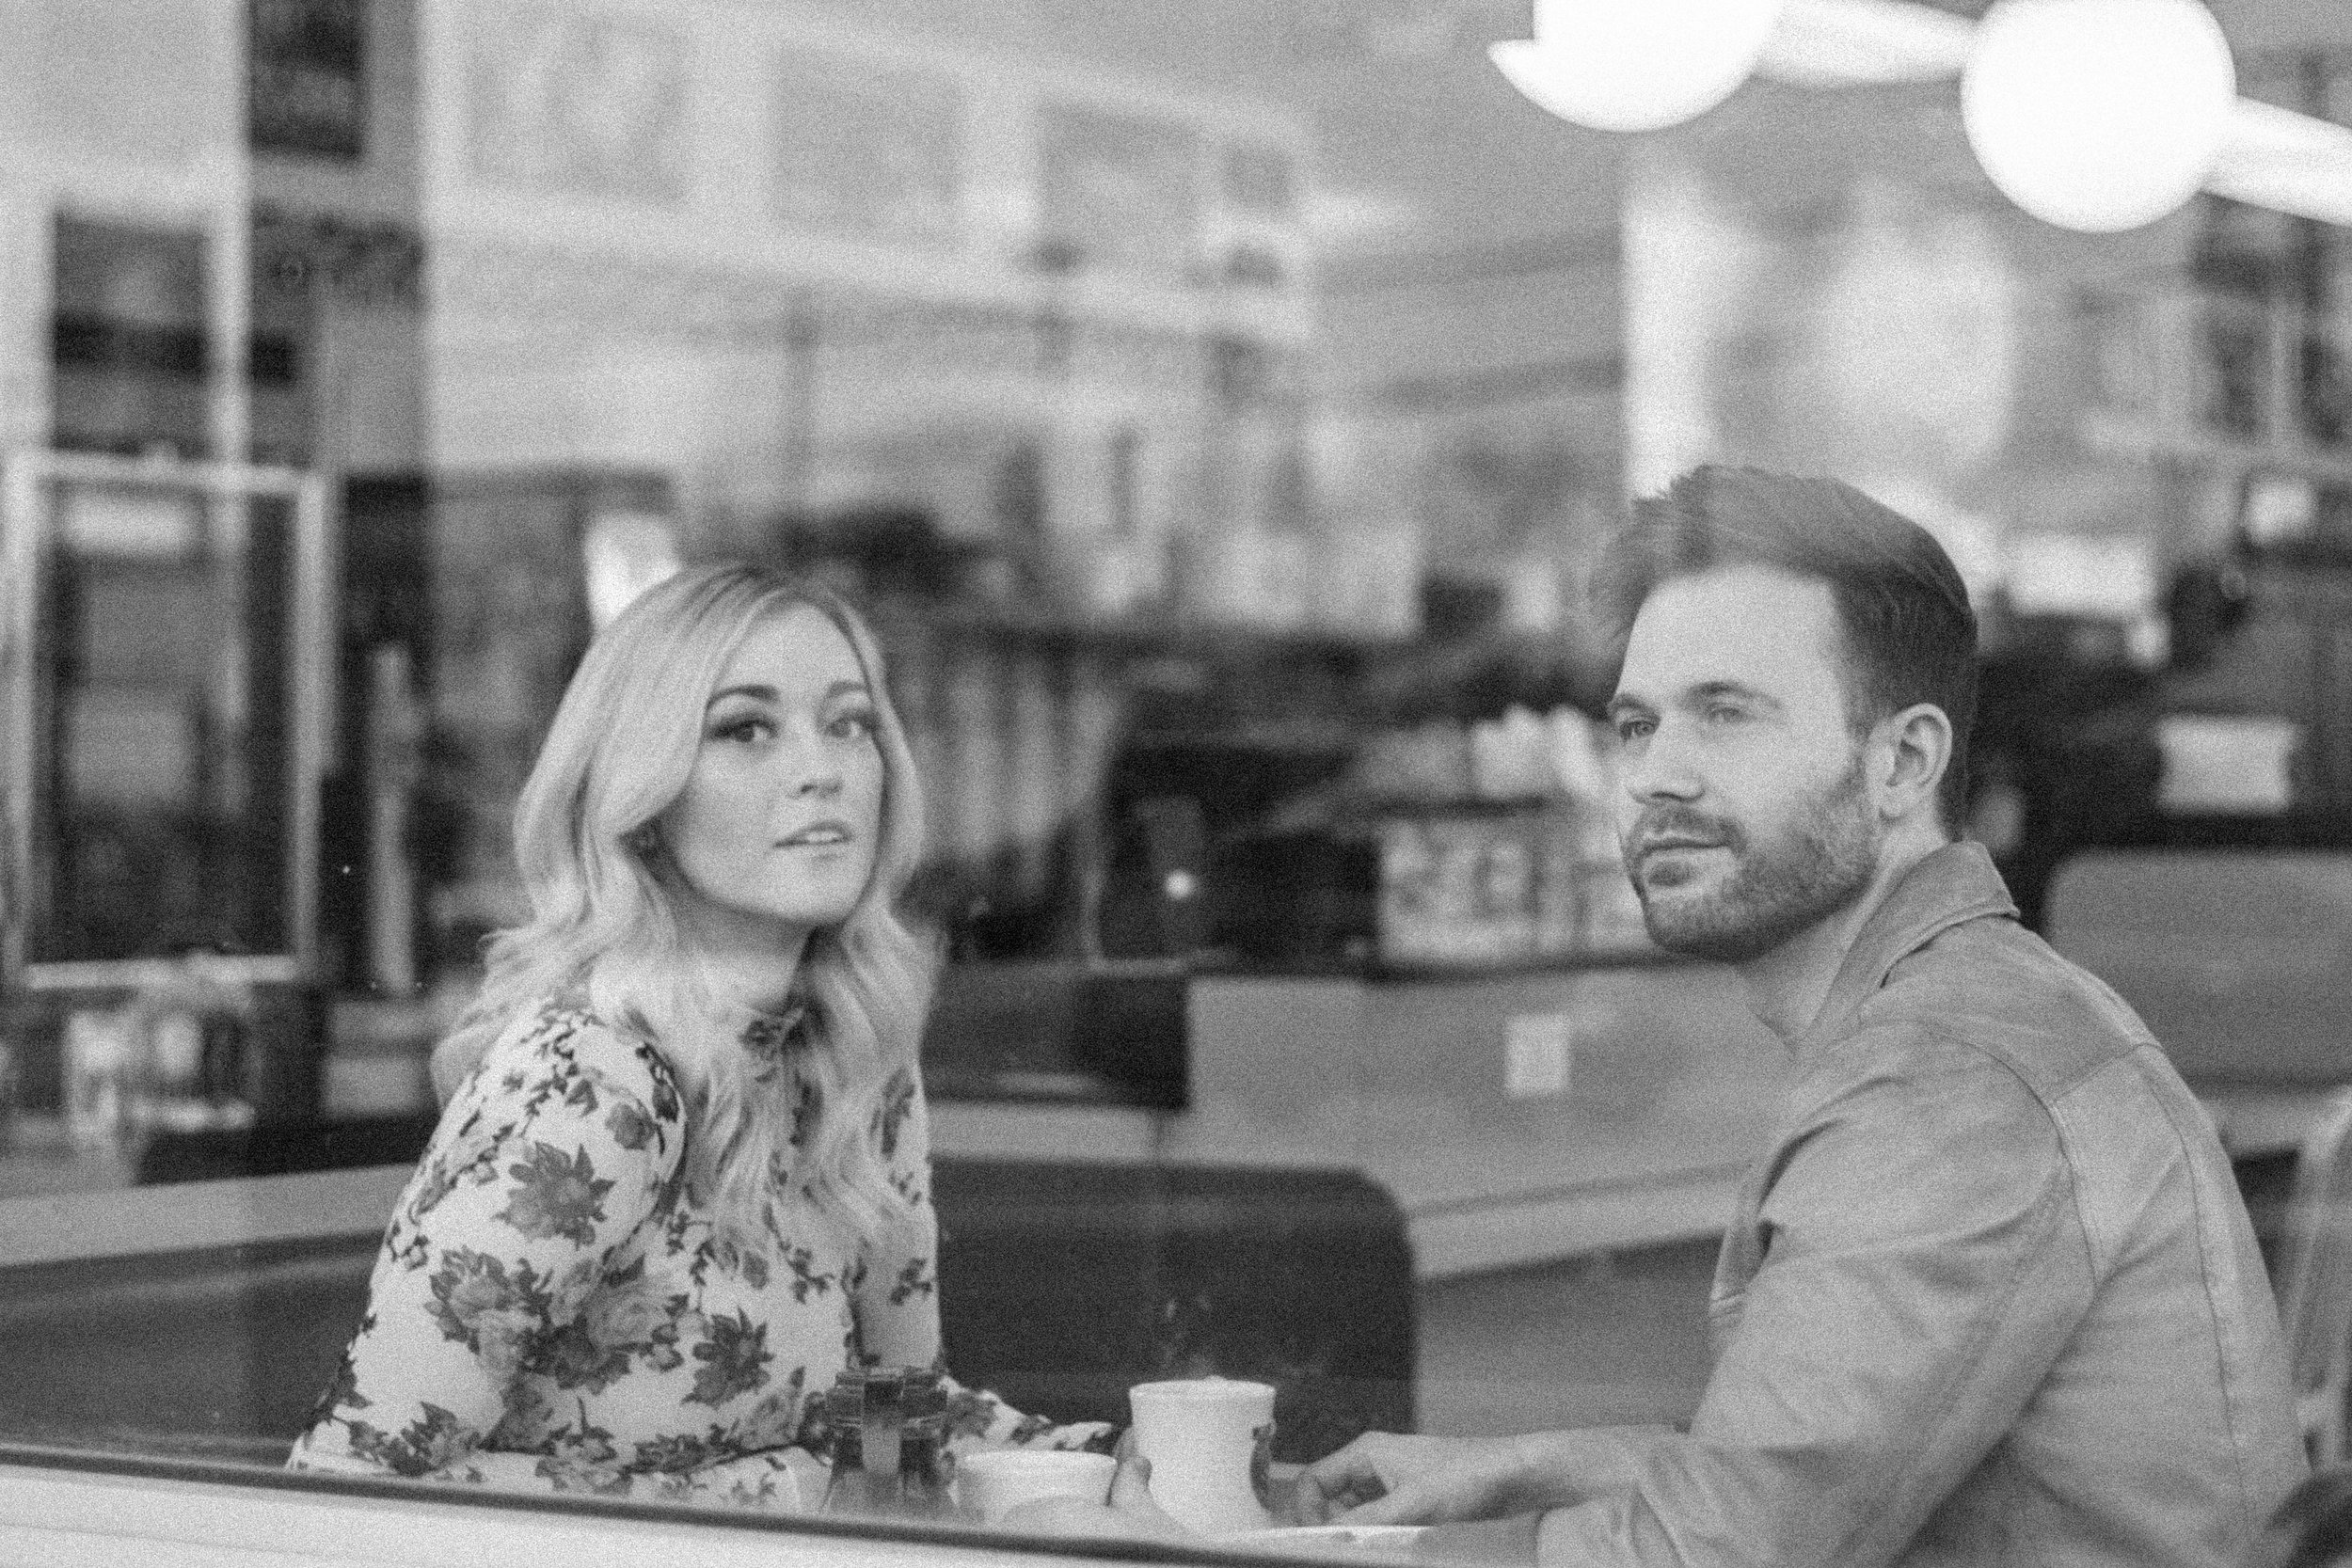 "THE DRYES - The first time the public got a taste of husband-wife country duo The Dryes was in May 2018 when they began releasing material from Vol.1. Vol.1 was recorded at the famed Blackbird Studios in Nashville, a town the North Carolina natives Derek Drye and Katelyn Drye now call home. Their first single, ""Amen,"" was spotlighted, by Rolling Stone Country's Jon Freeman who said: ""Husband-wife duo The Dryes sing their origin story in the slinky 'Amen'...a scuzzy guitar riff that recalls Norman Greenbaum's classic 'Spirit In The Sky' and a strutting beat that could make the most conservative church lady clutch her pearls. Husband Derek adds harmonies in the chorus breakdown, a low-down gospel that asks the rhetorical question: 'Can I get an Amen?' With a groove this tough, absolute.""The duo's subsequent lead single from Vol. II is ""War,"" a song 30 years in the making that carries an emotional backstory and was released alongside a breathtaking music video. CMT shared some thoughts on the single when they ran the video, saying ""...this duo sings of a love worth fighting for in their latest single 'War'."""